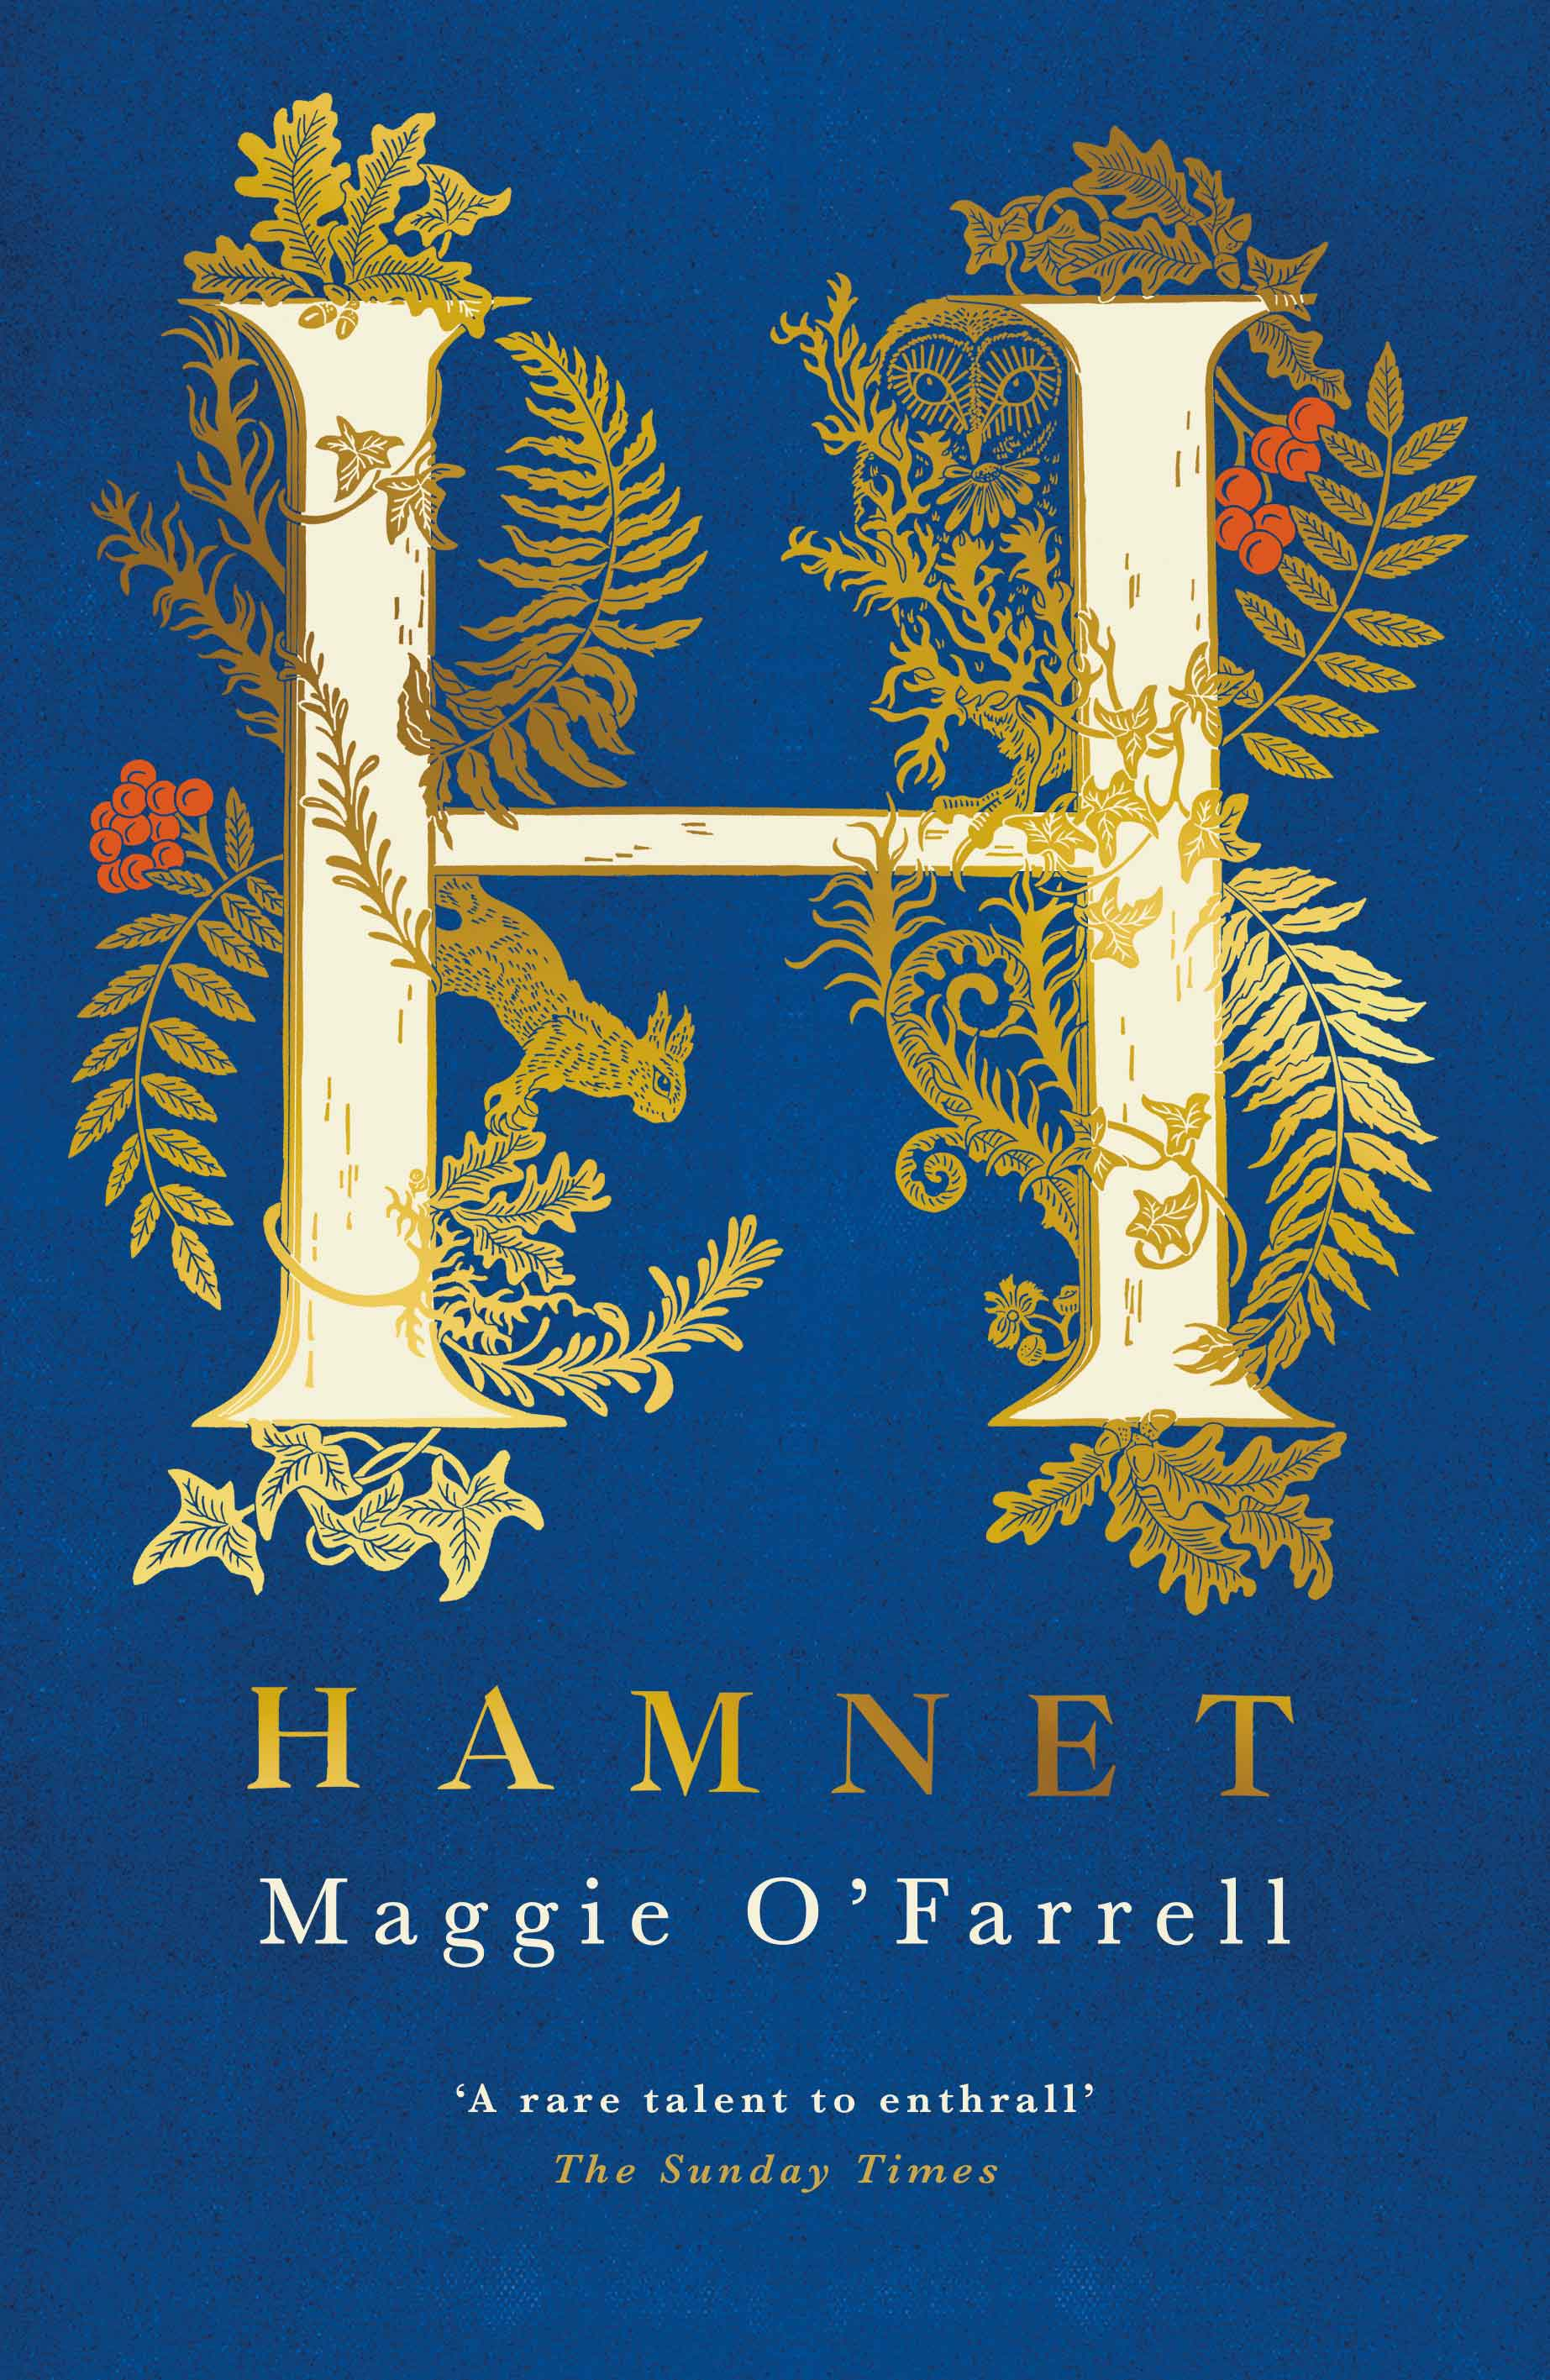 Hamnet by Maggie O'Farrell, Tinder, £20